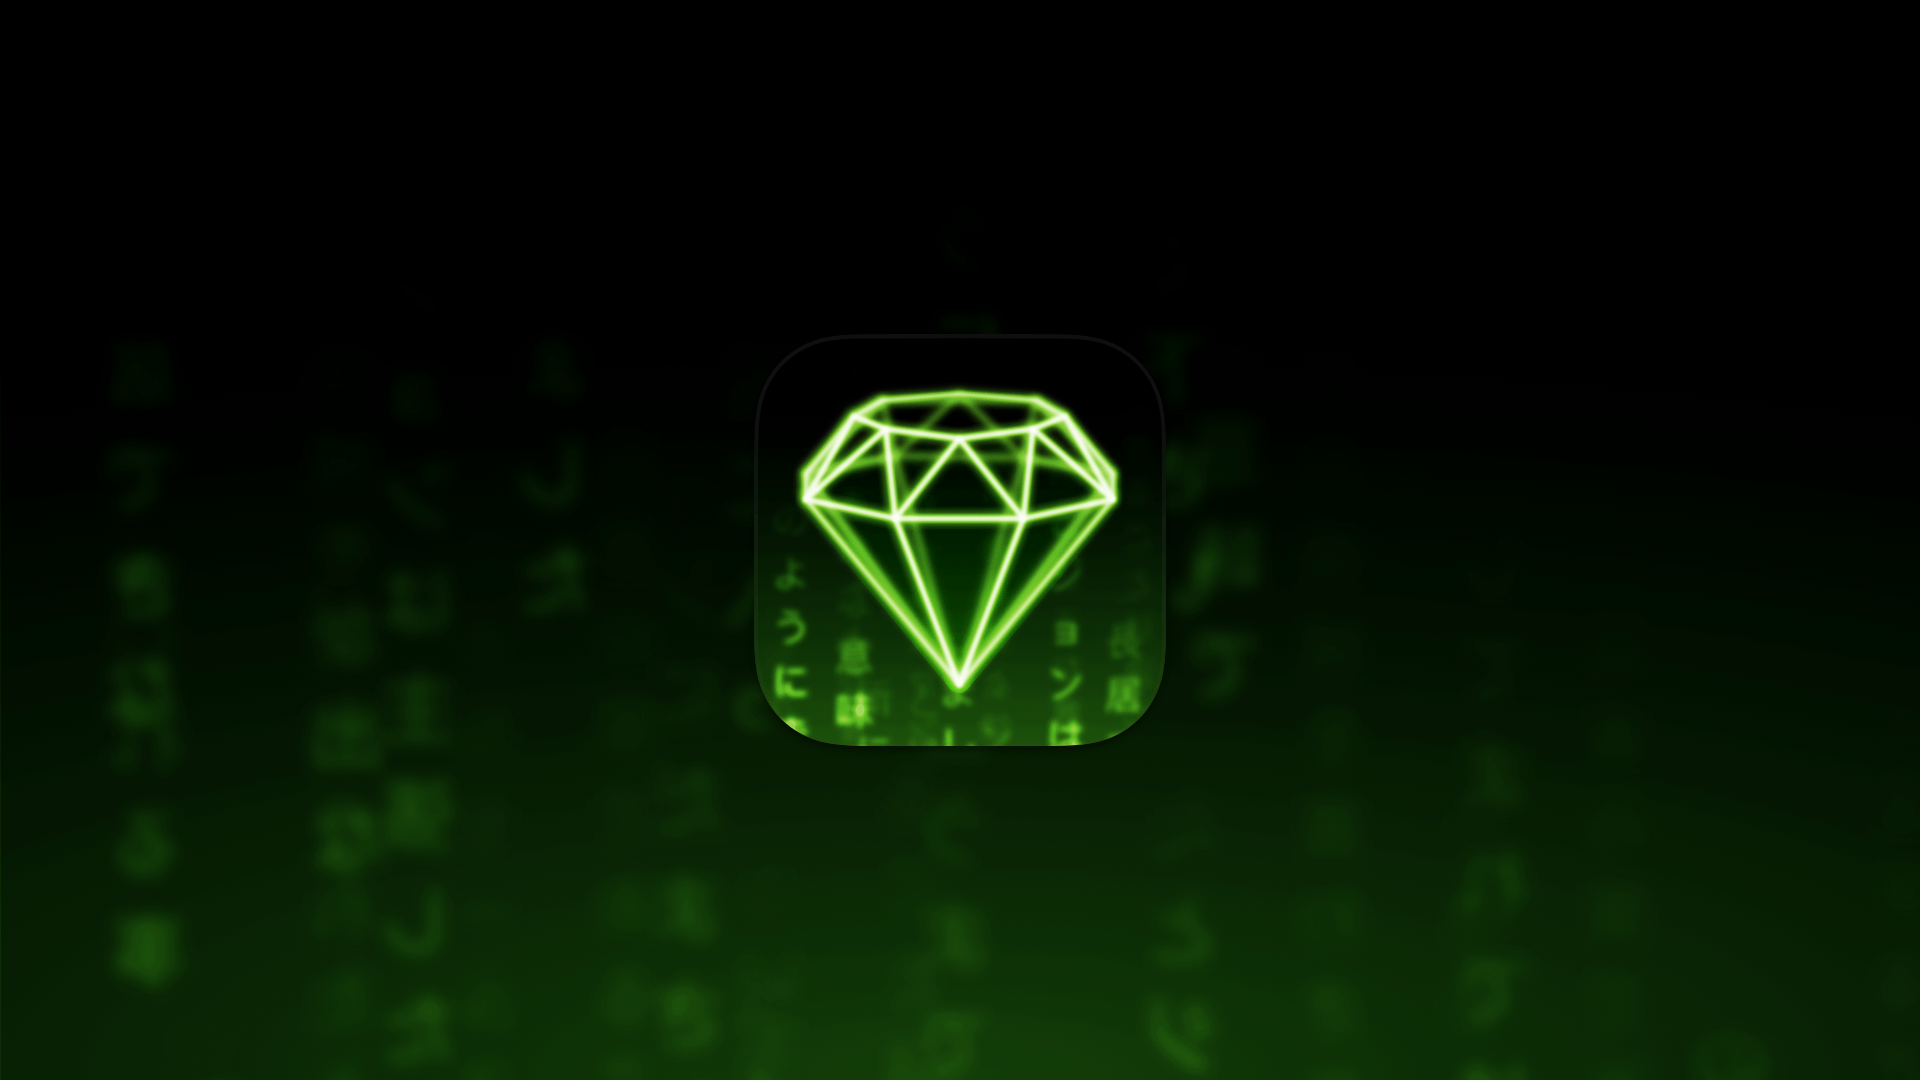 An icon design inspired by the Matrix, with green outlines and green characters floating in the background.